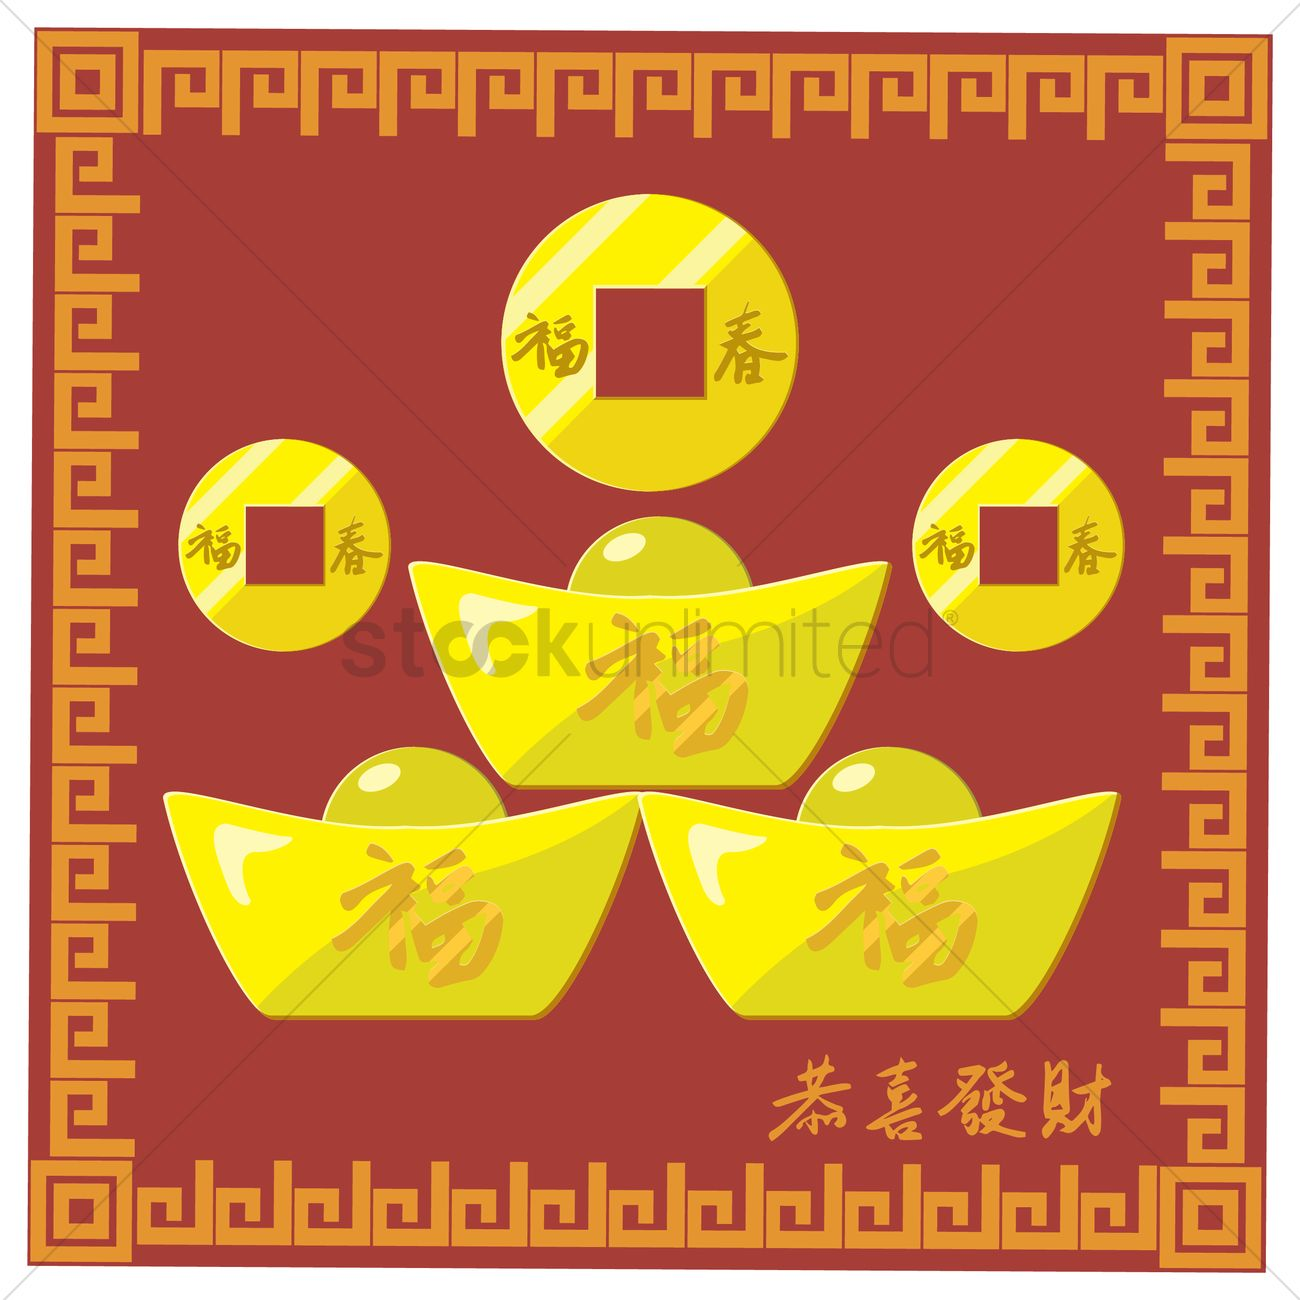 Chinese new year gold coins and bar greeting card design